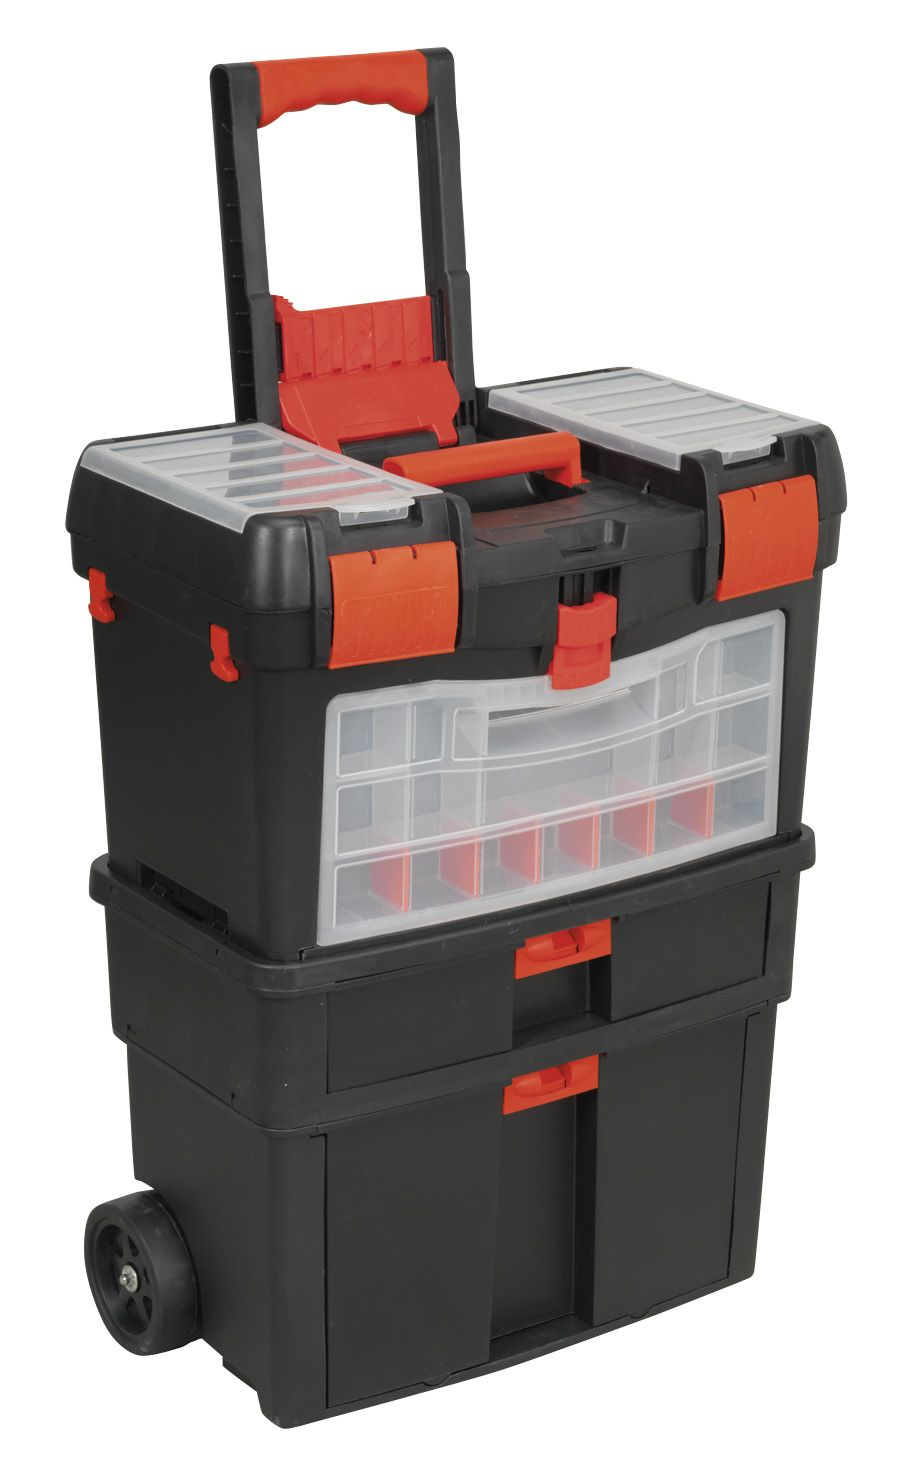 Sealey Mobile Toolbox with Tote Tray & Removable Assortment Box